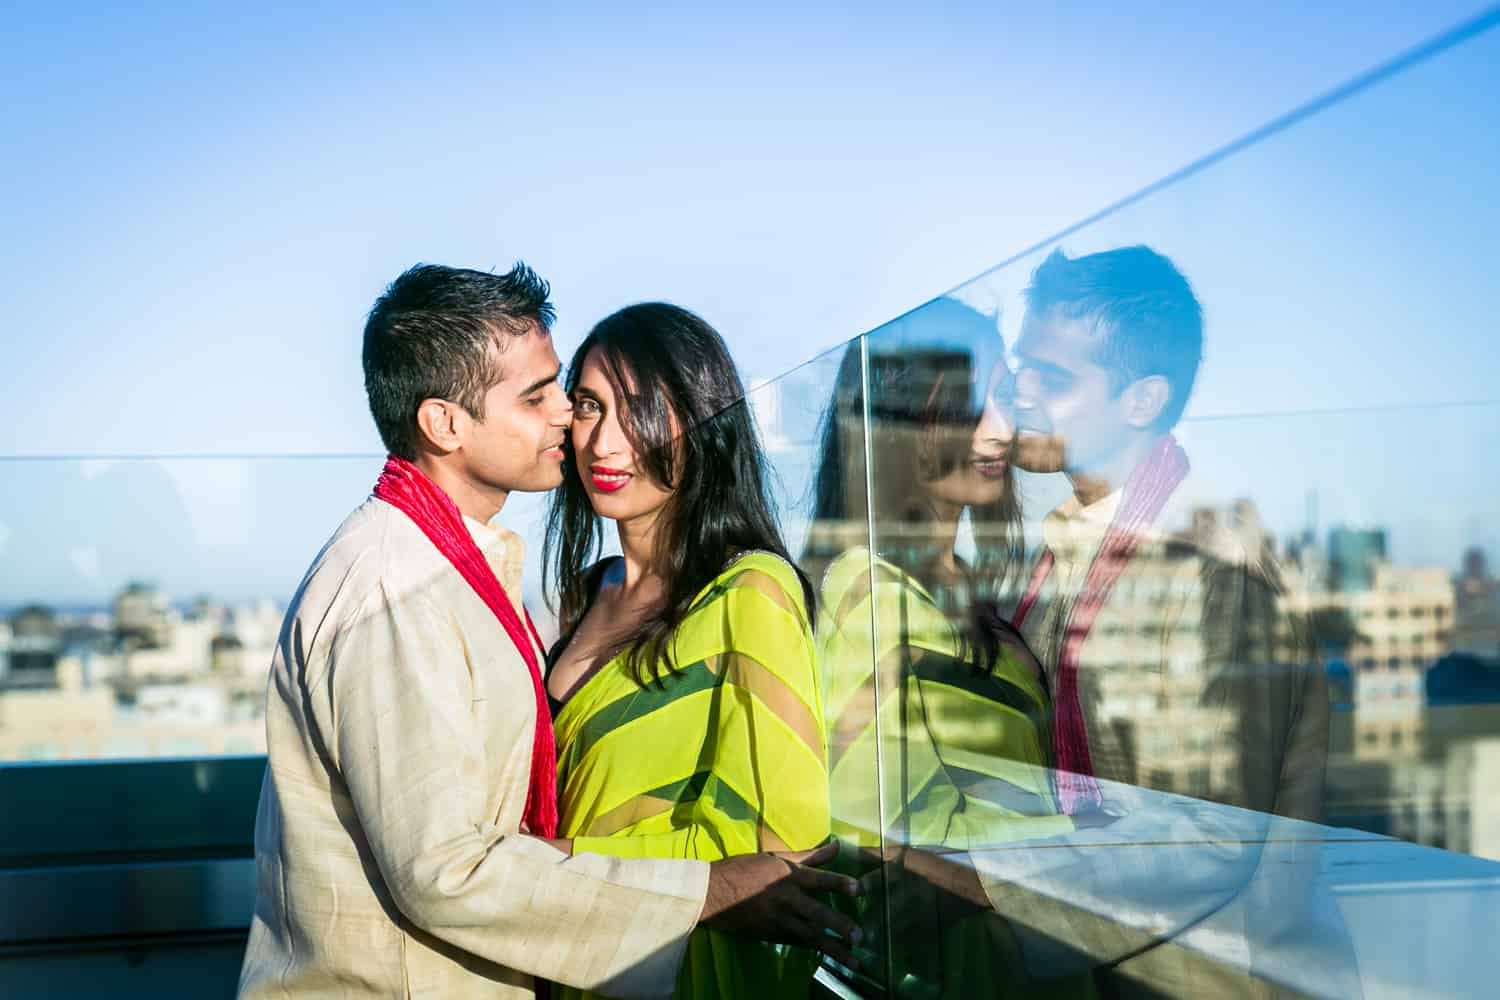 Engaged couple on rooftop wearing traditional Indian attire with reflection in glass wall